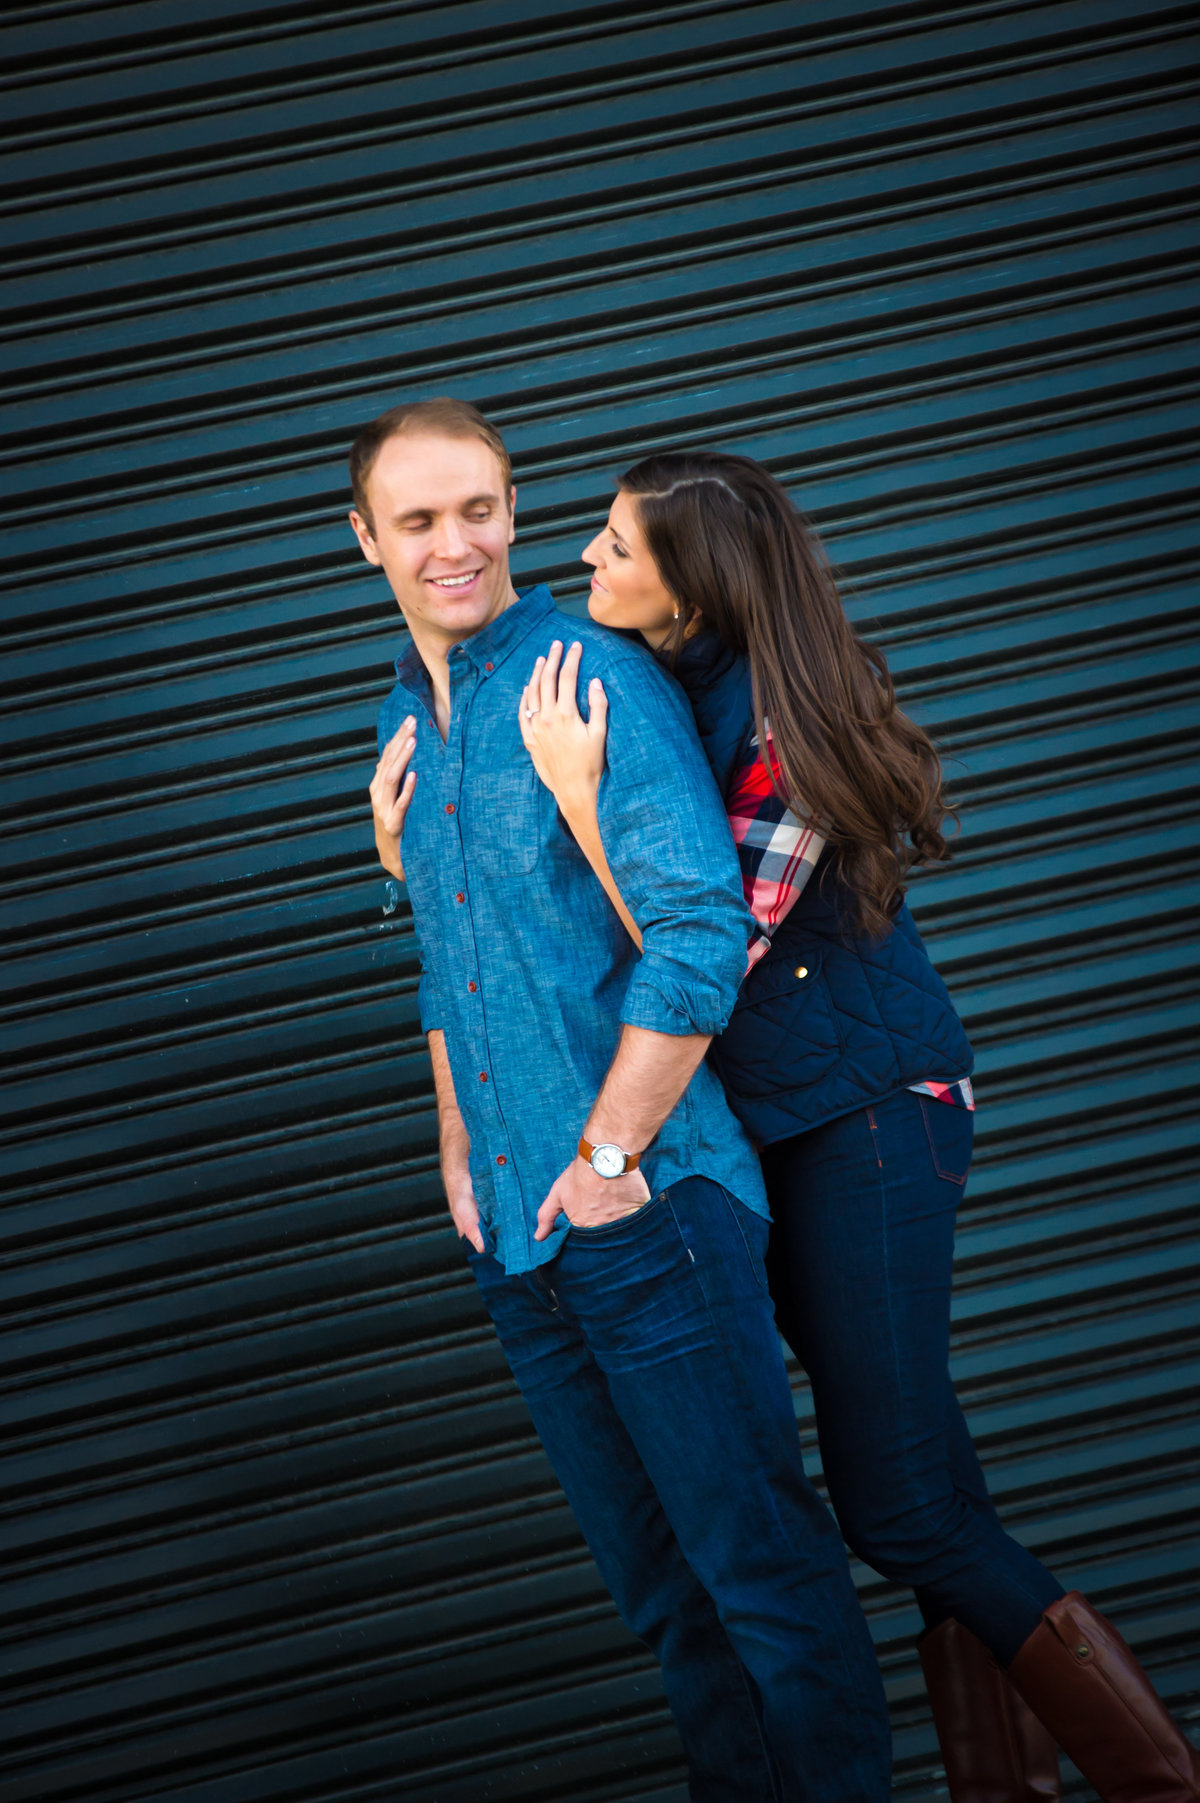 Sarah_Nick_Engagement-47